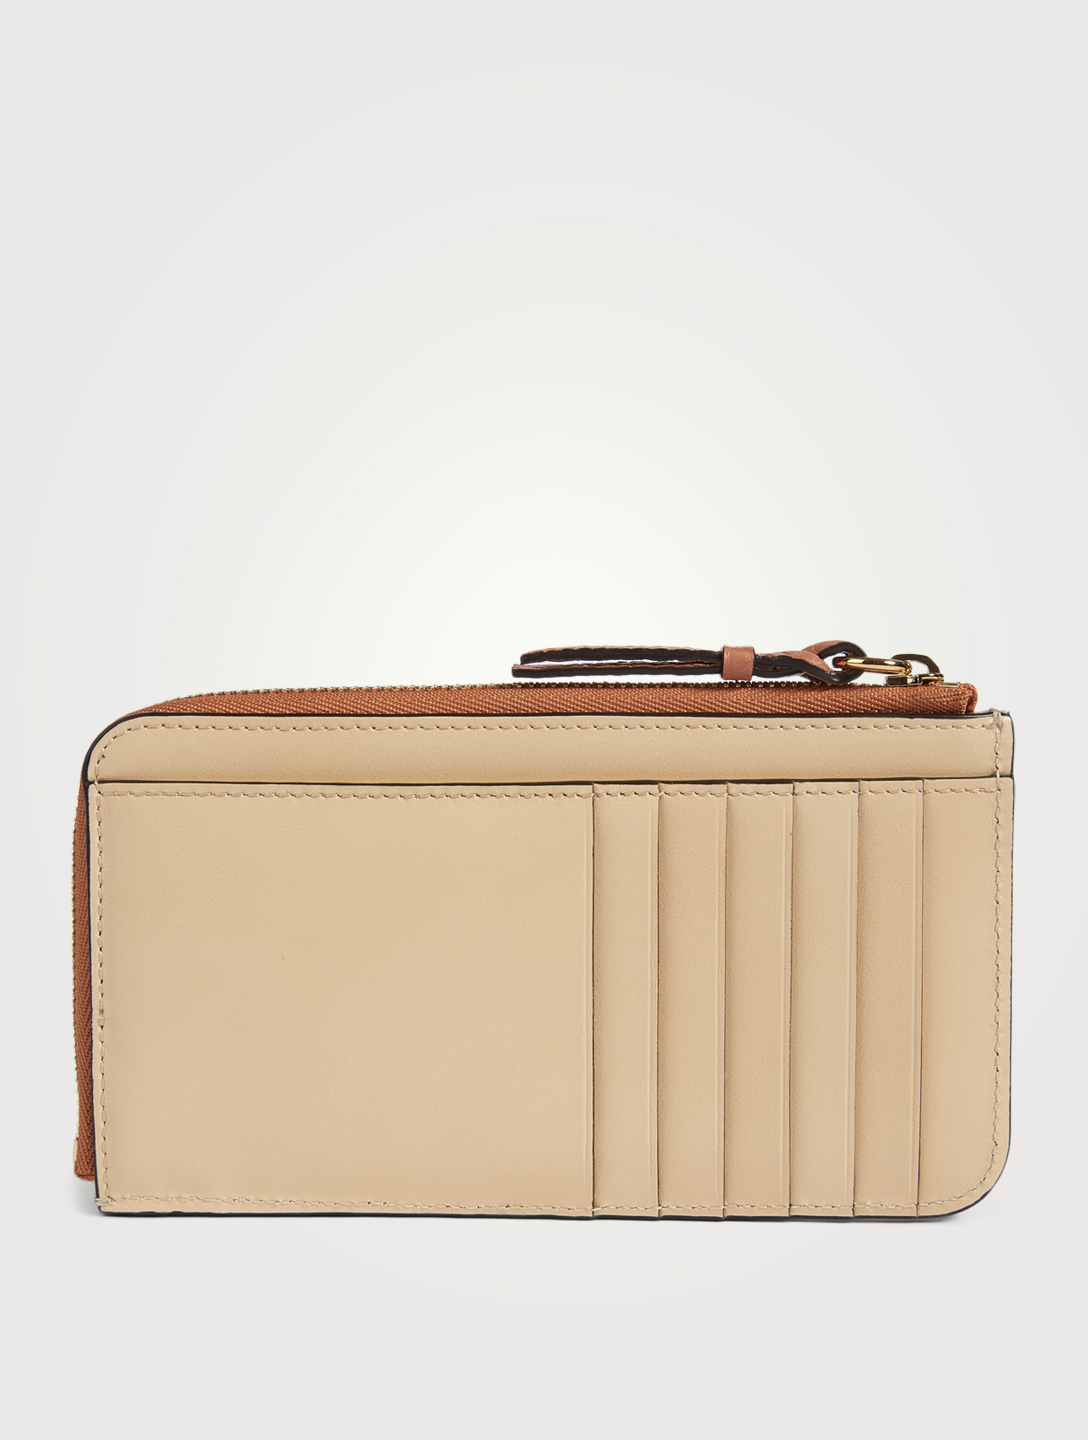 CHLOÉ Walden Leather Zippered Card Holder Women's Beige